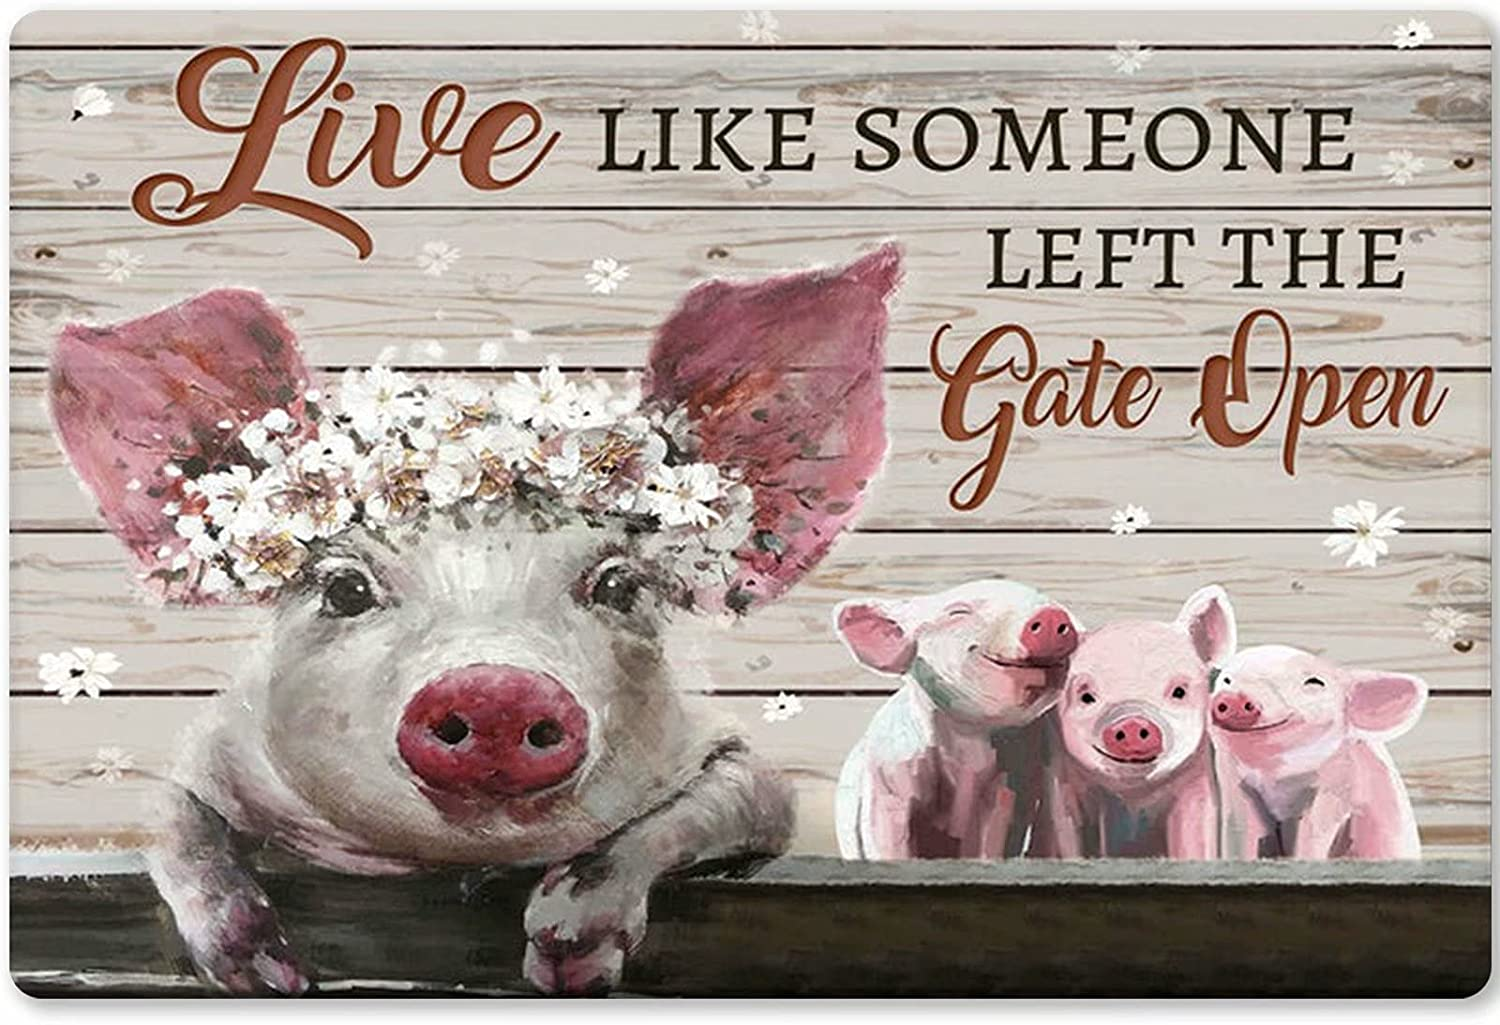 Live Like Someone Left The Gate Open Pink Pig Fun Tin Sign Old-Fashioned Farm Kitchen Bathroom Bar Home Wall Decoration 12x8 Inches